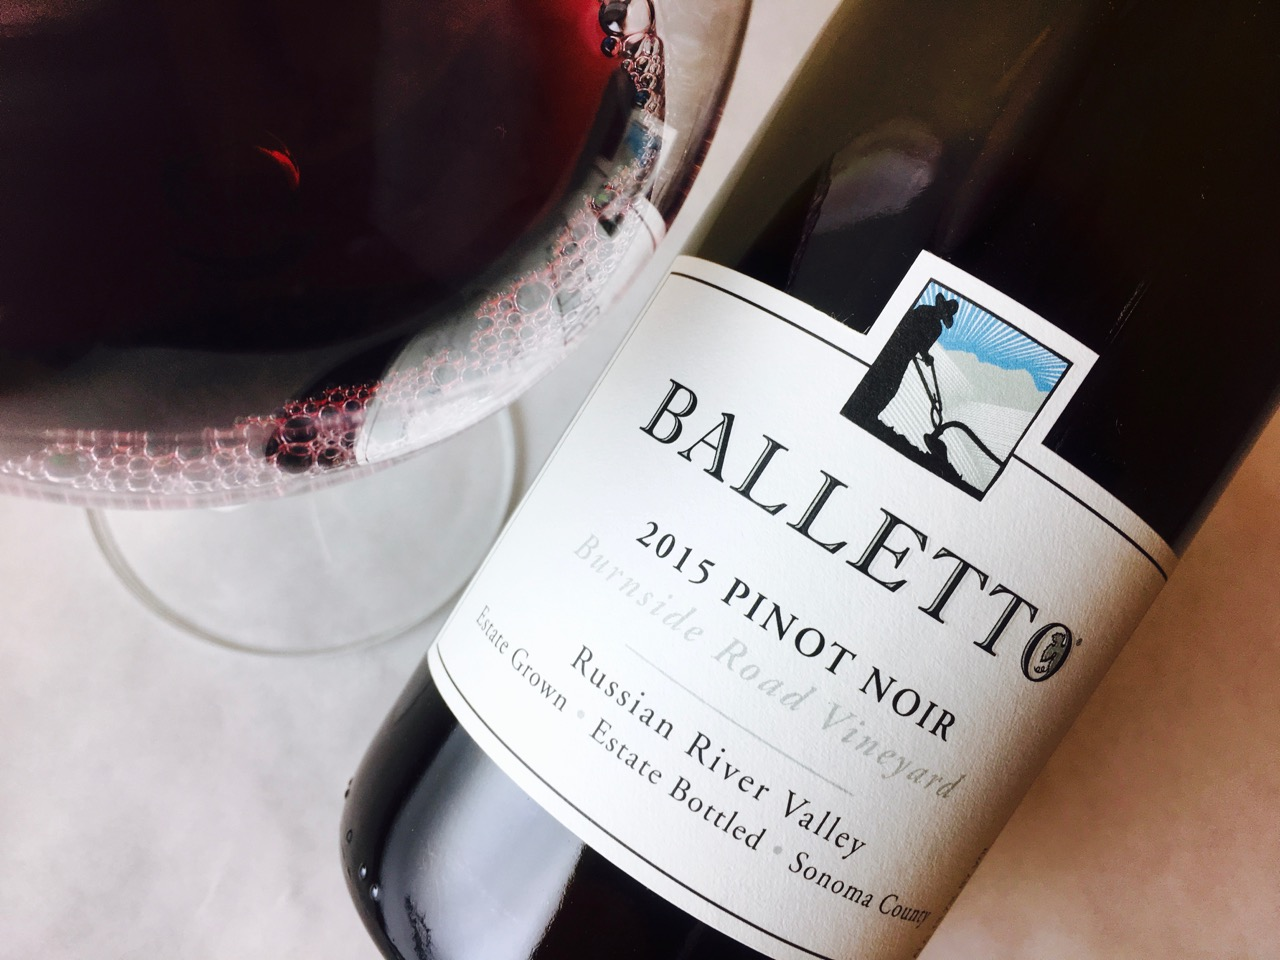 2015 Balletto Pinot Noir Burnside Road Vineyard Russian River Valley